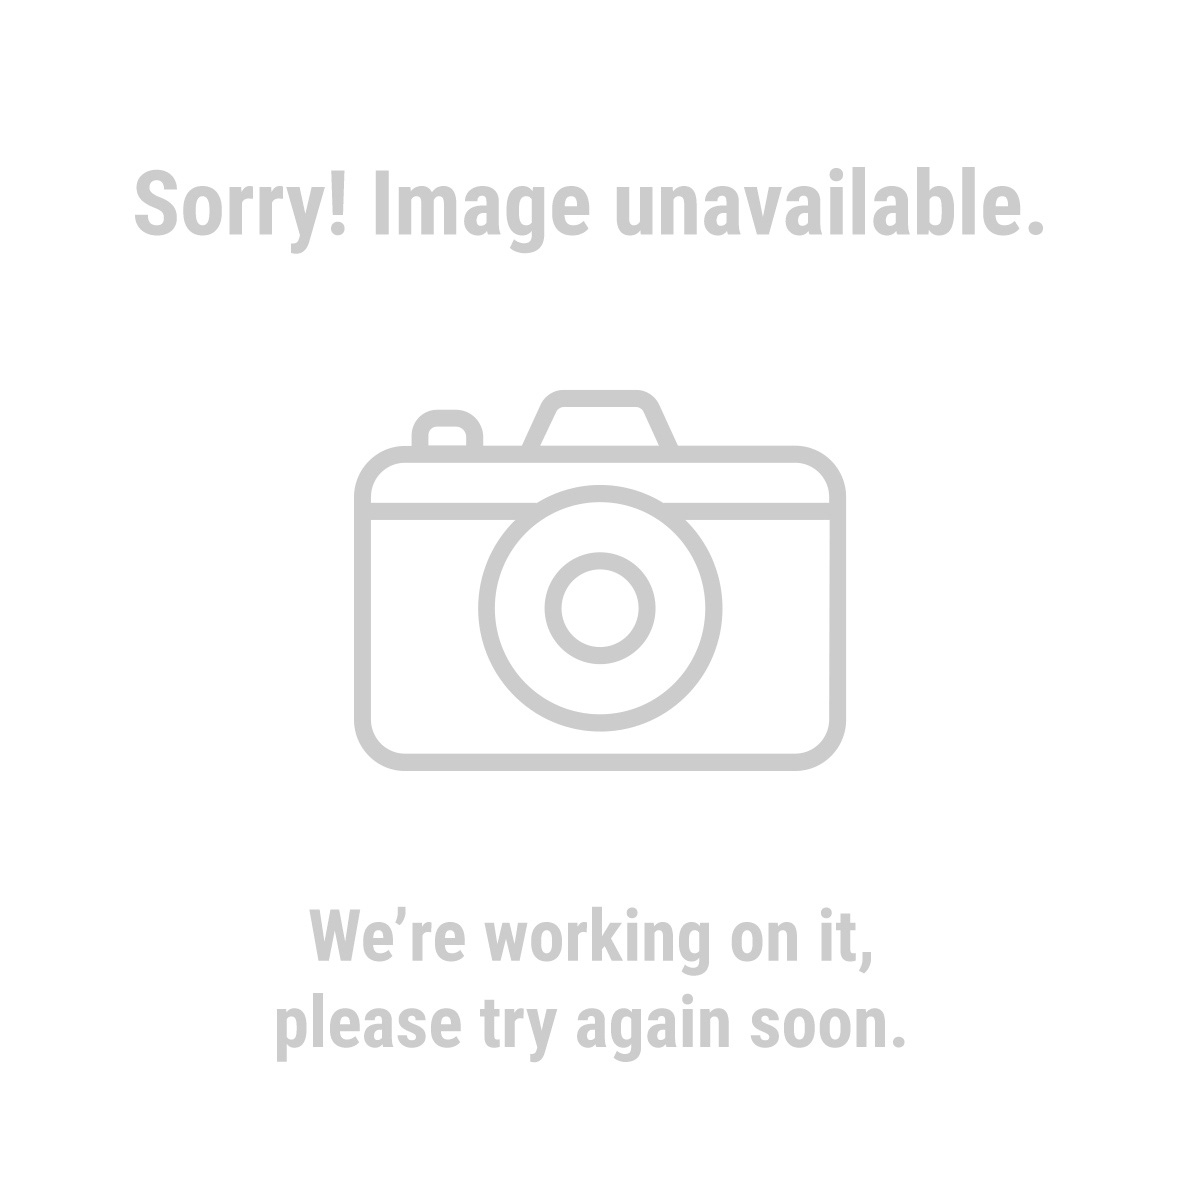 Storehouse 93929 15 Bin Portable Parts Storage Case